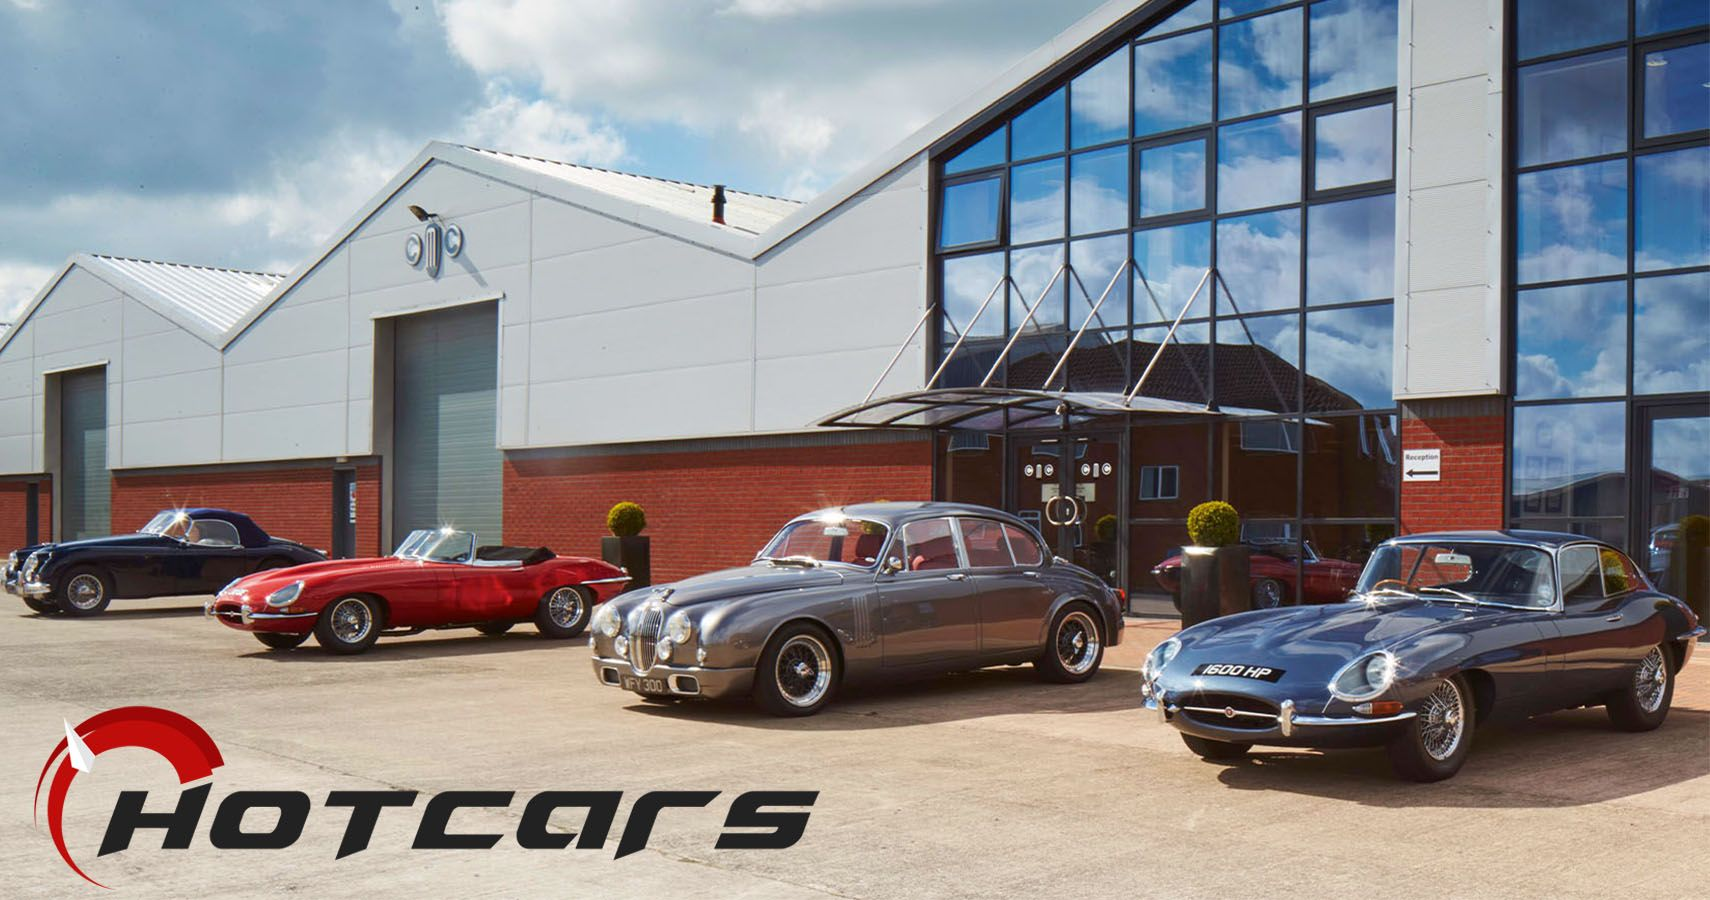 EXCLUSIVE: Celebrating 60 Years Of The E-Type Jaguar With Classic Motor Cars Ltd